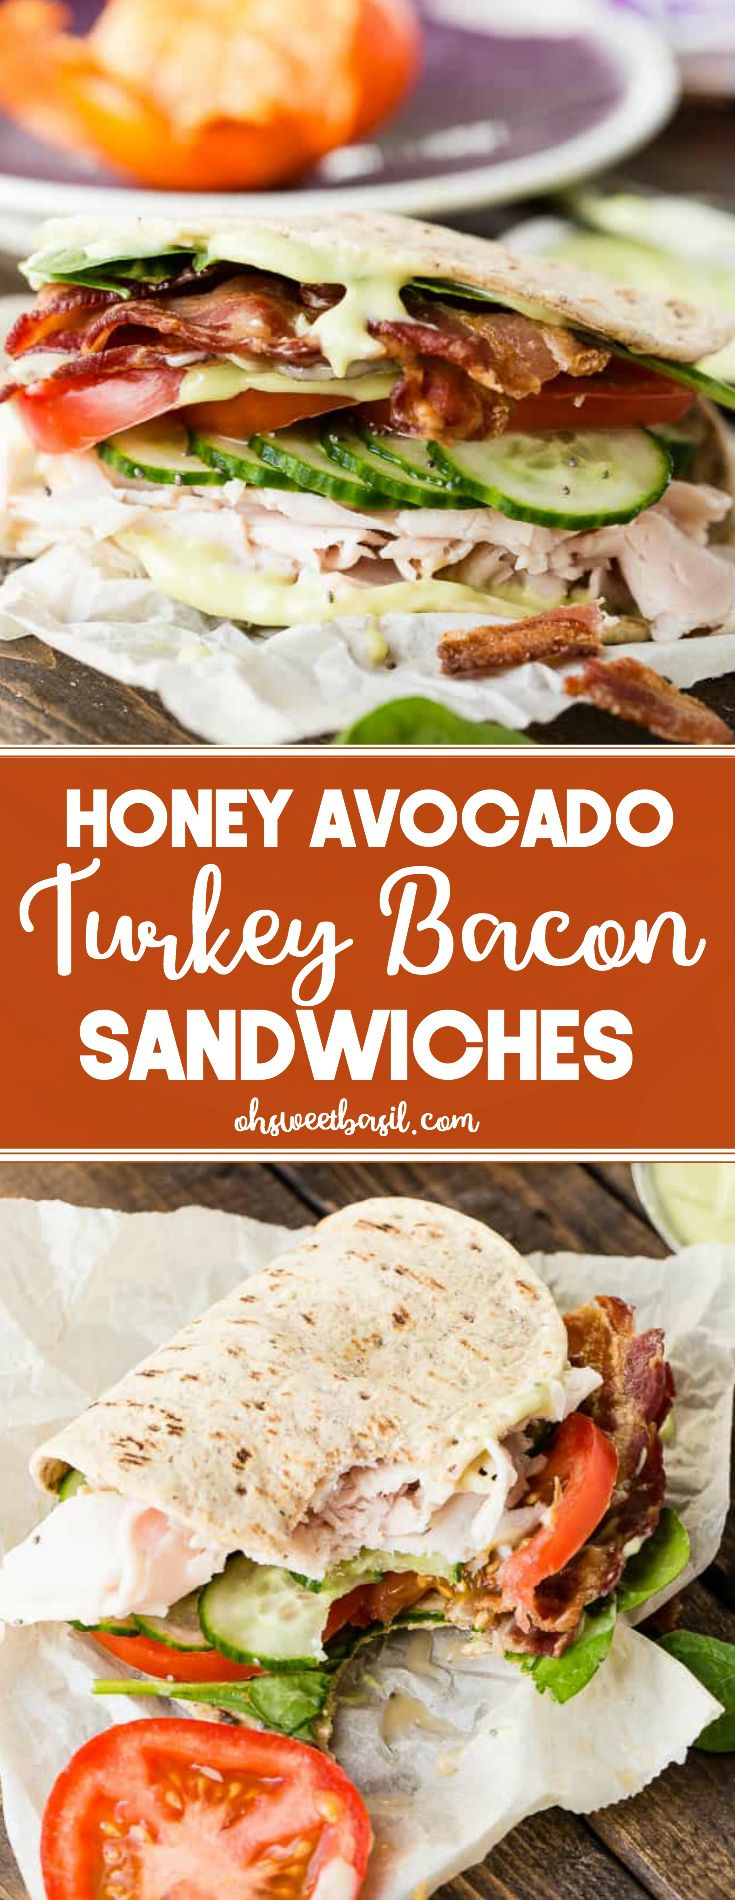 These Honey Avocado Turkey Bacon Sandwiches are my daily lunch lately, so for anyone needing healthy lunch ideas, this is it! And the best part? It\'s really good!